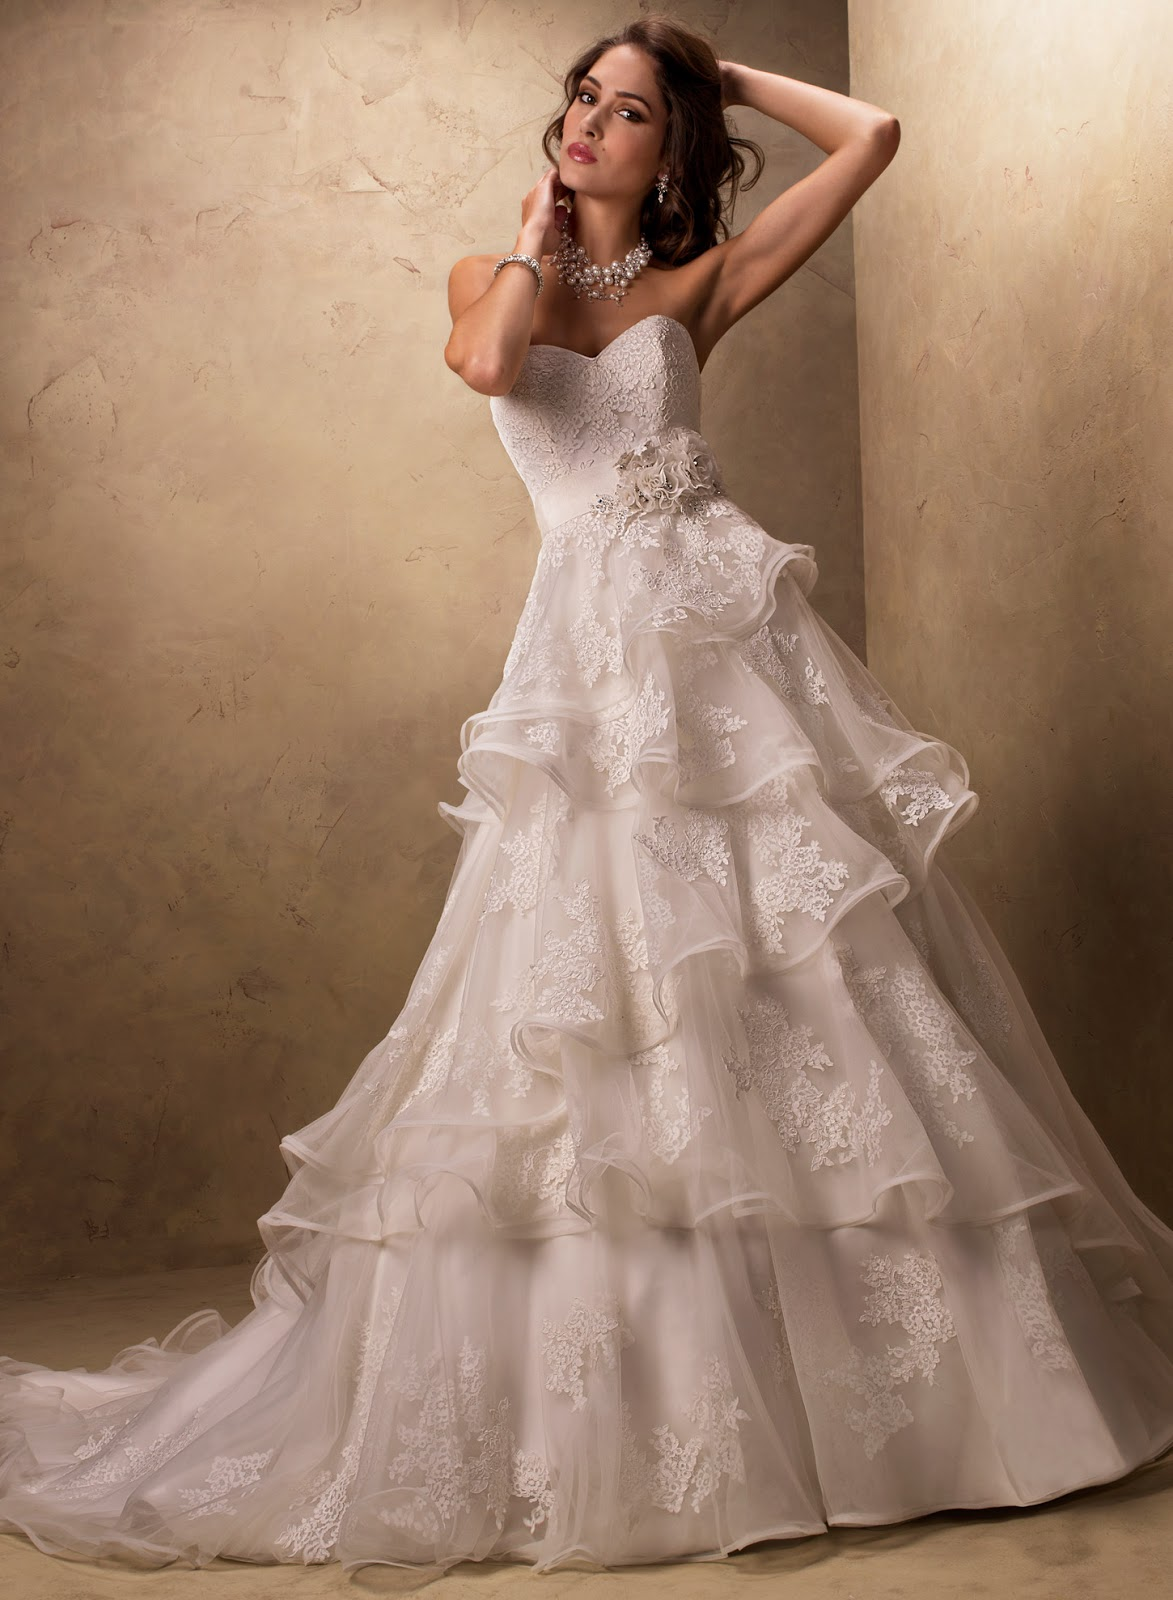 Luxury Tiered Lace Appliqued Wedding Dress With Crystals And Flowers.